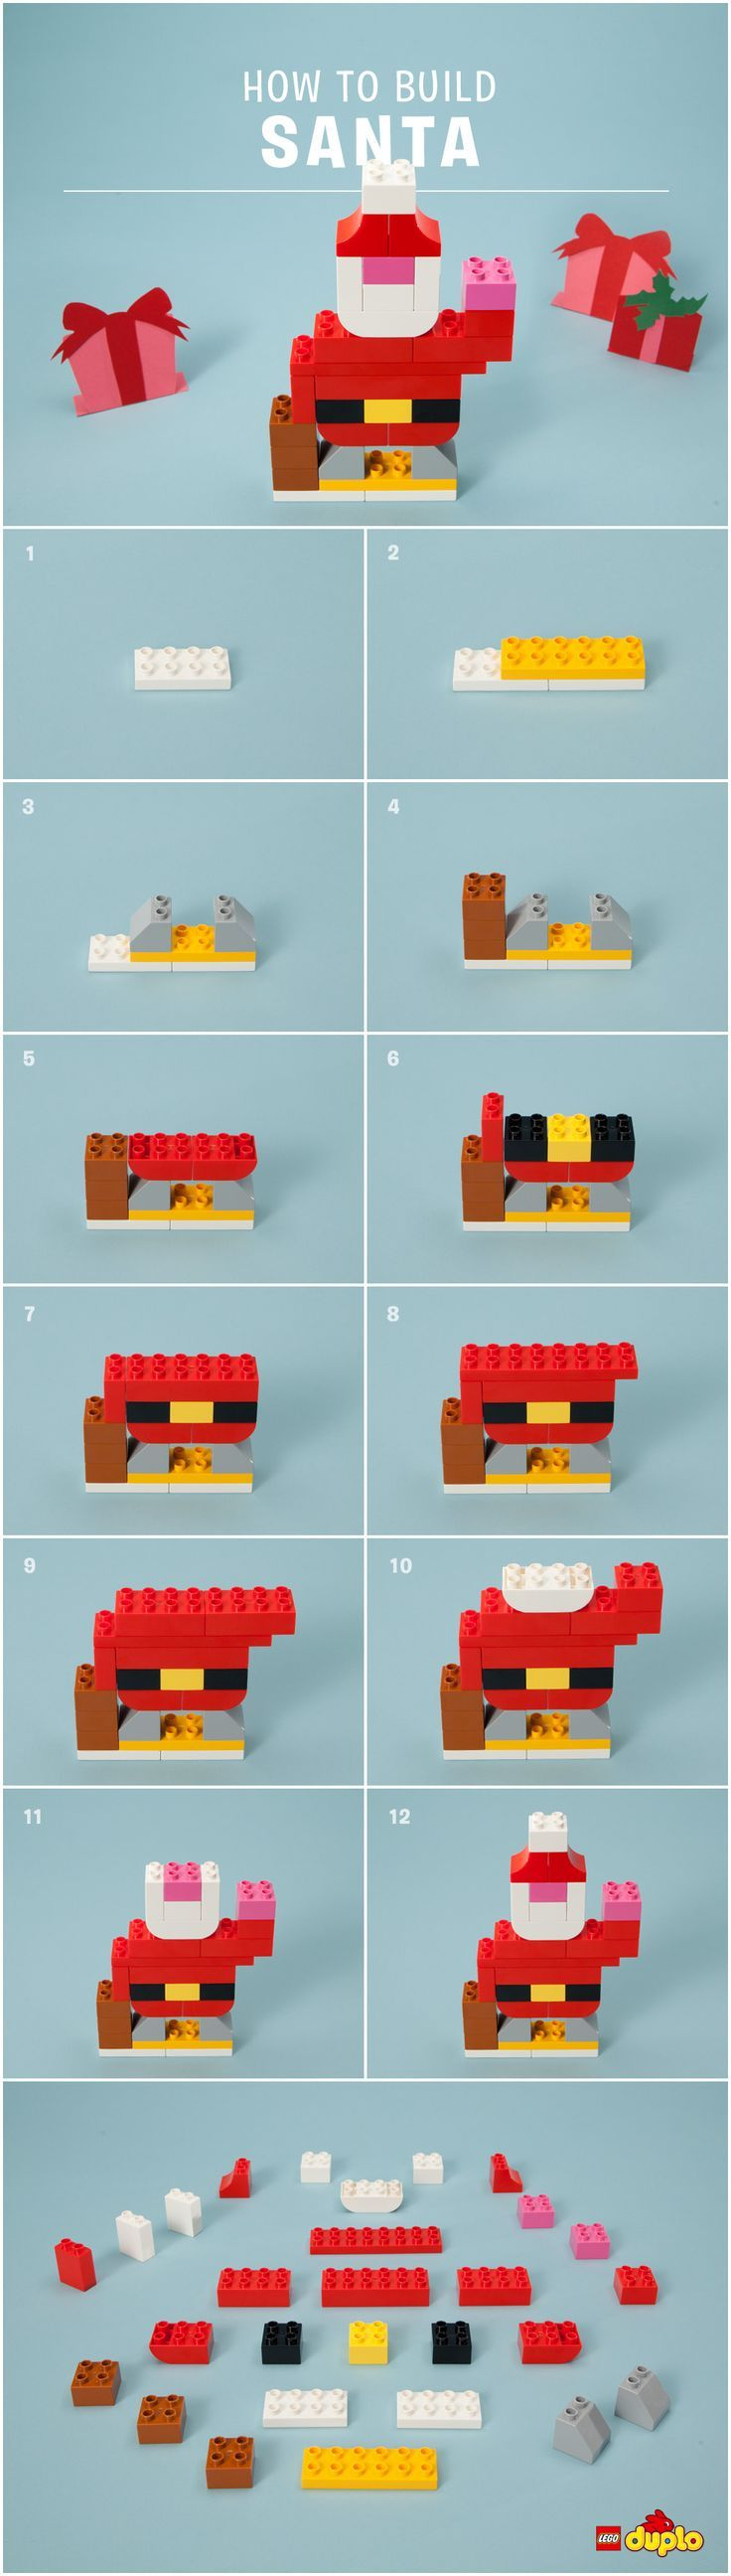 Ho Ho Ho! Your little one can sweeten the holiday countdown by building their very own LEGO Santa!